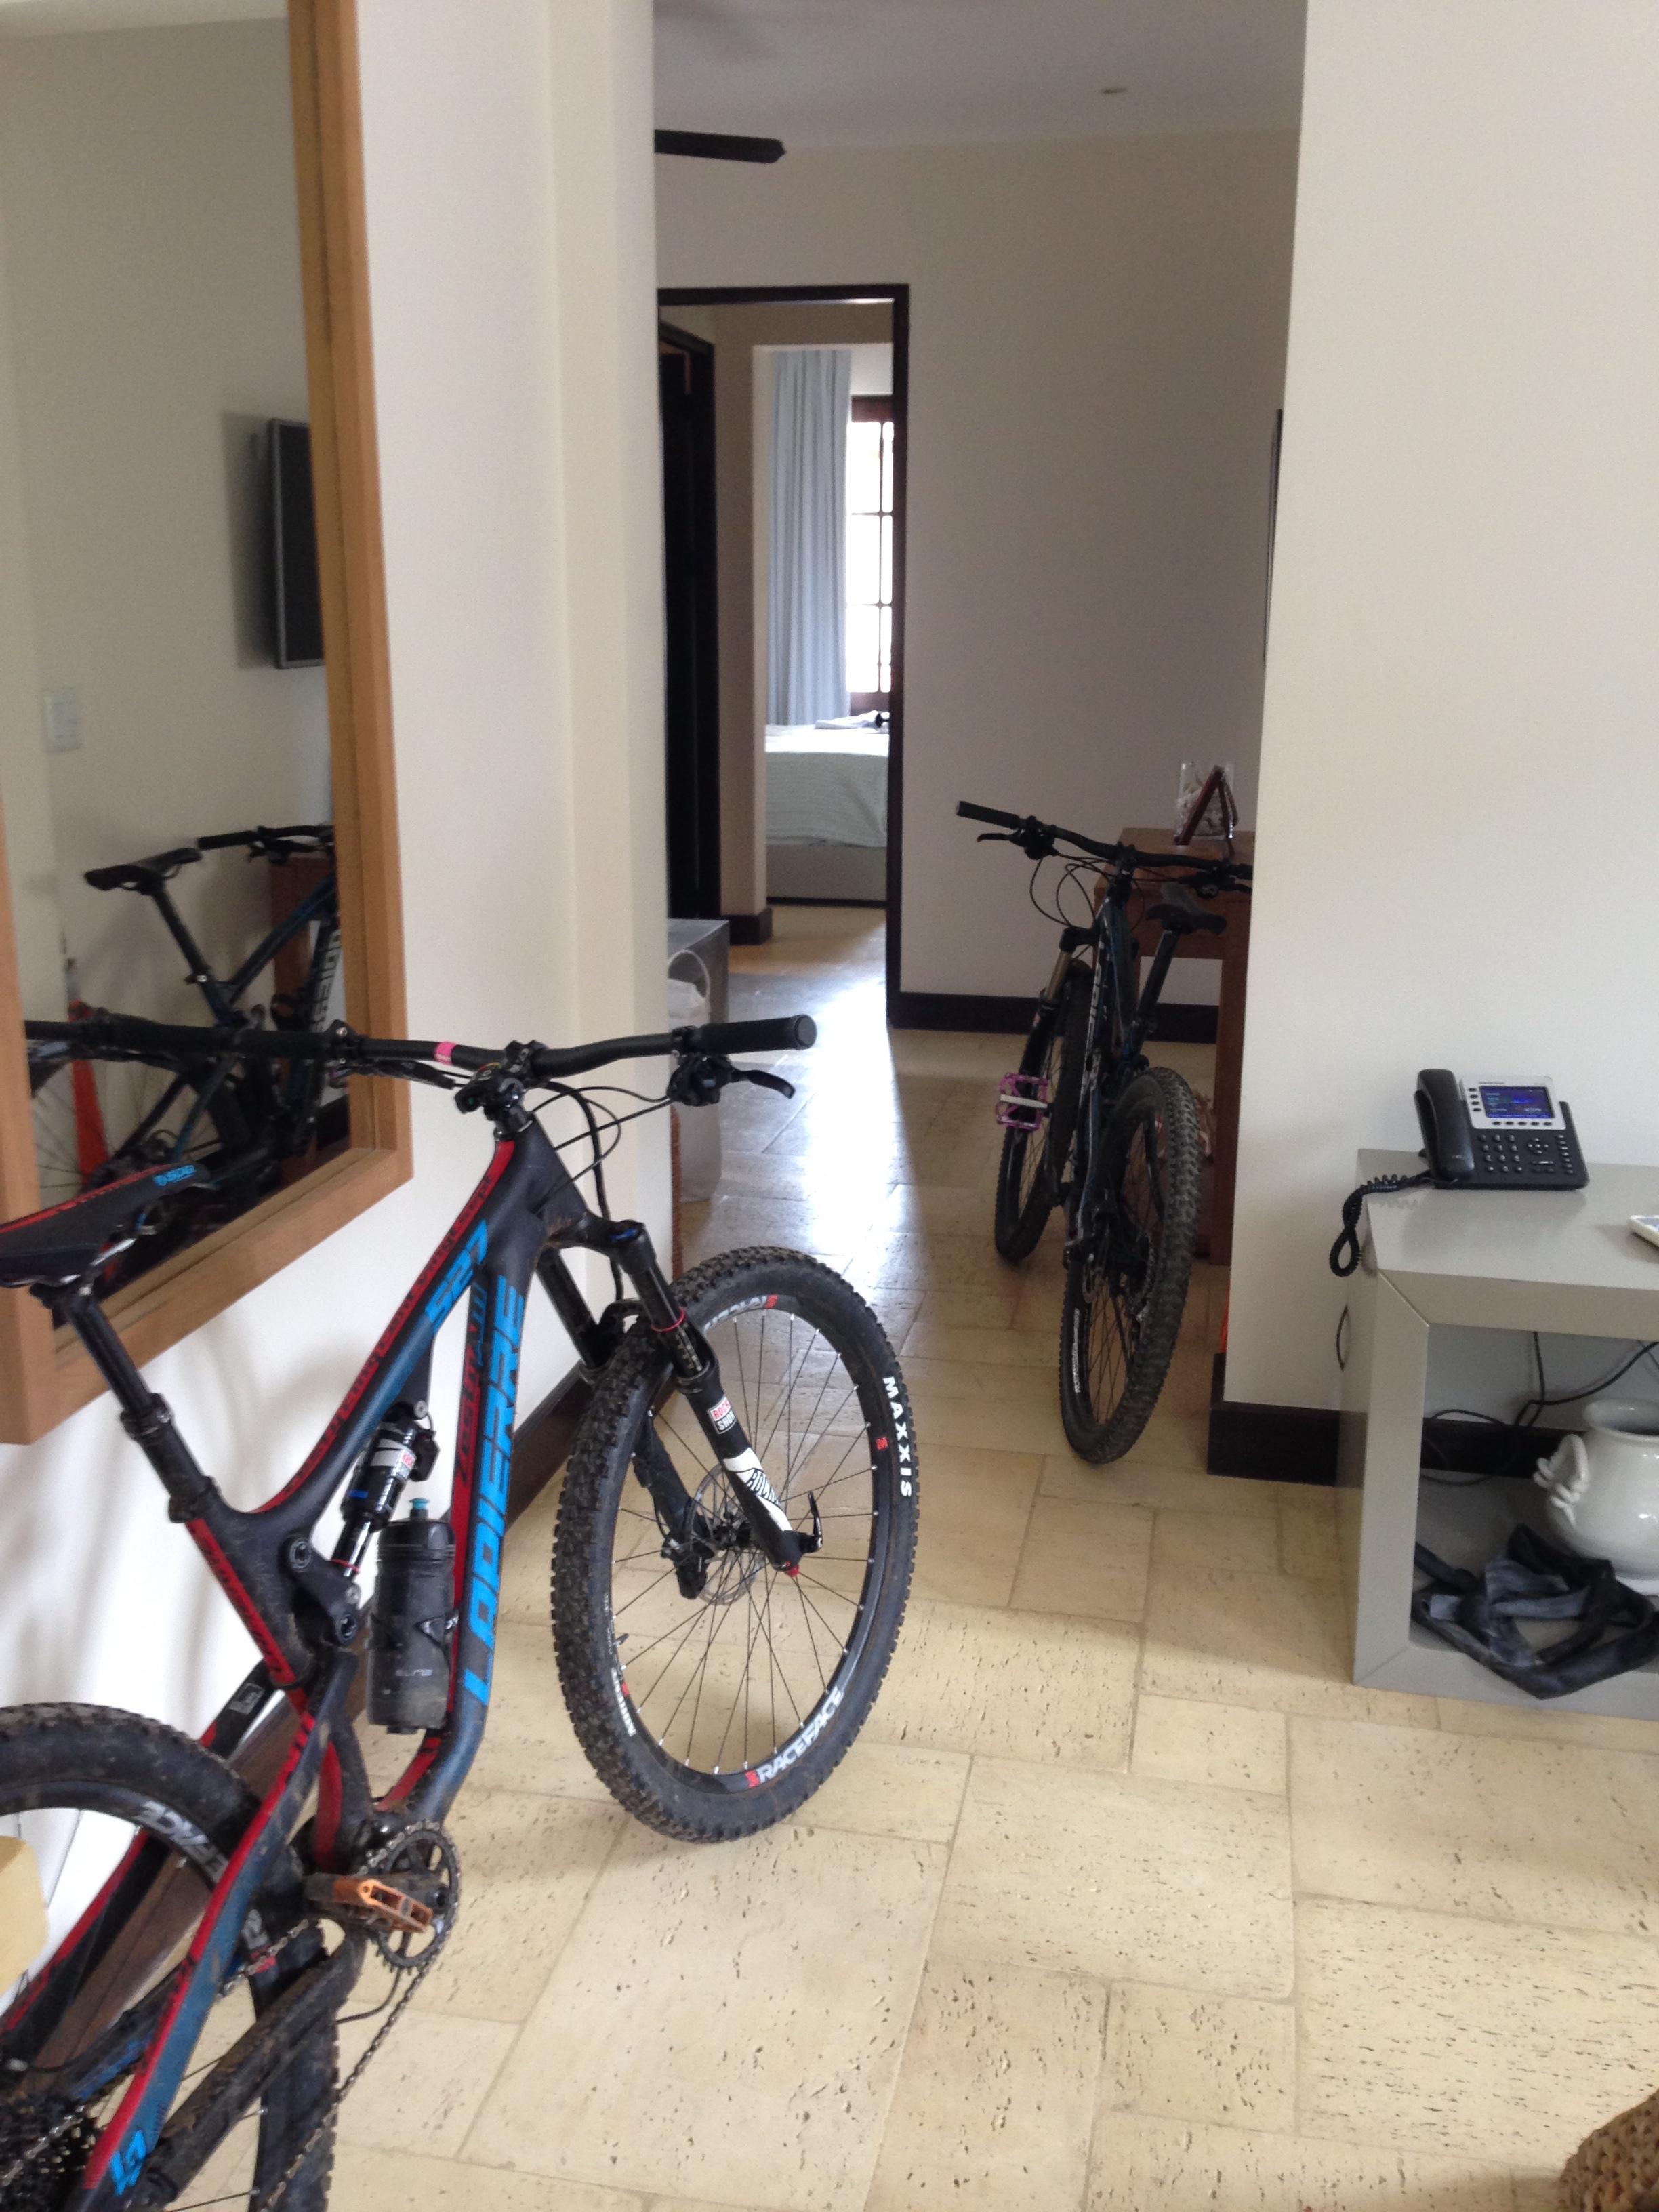 A mountain biker's room